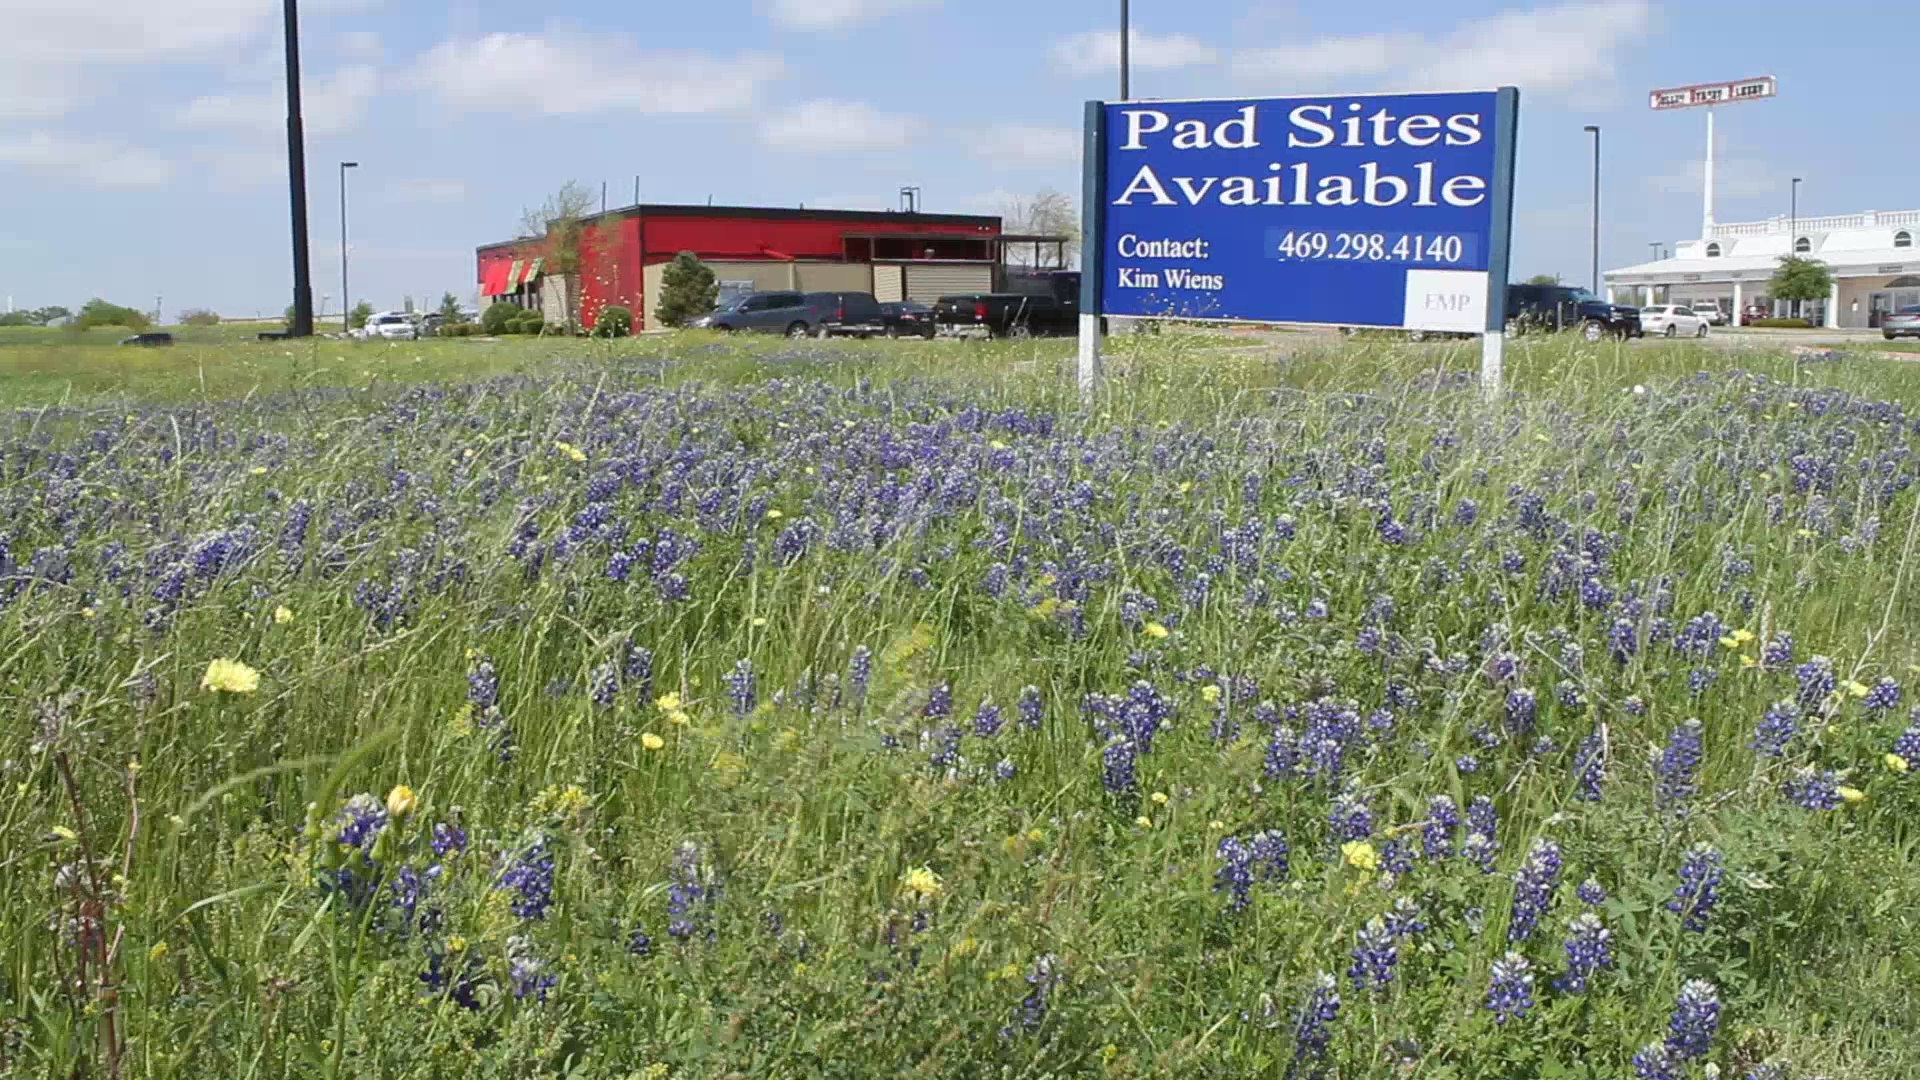 Pad Sites Available Sign at Corsicana Crossing